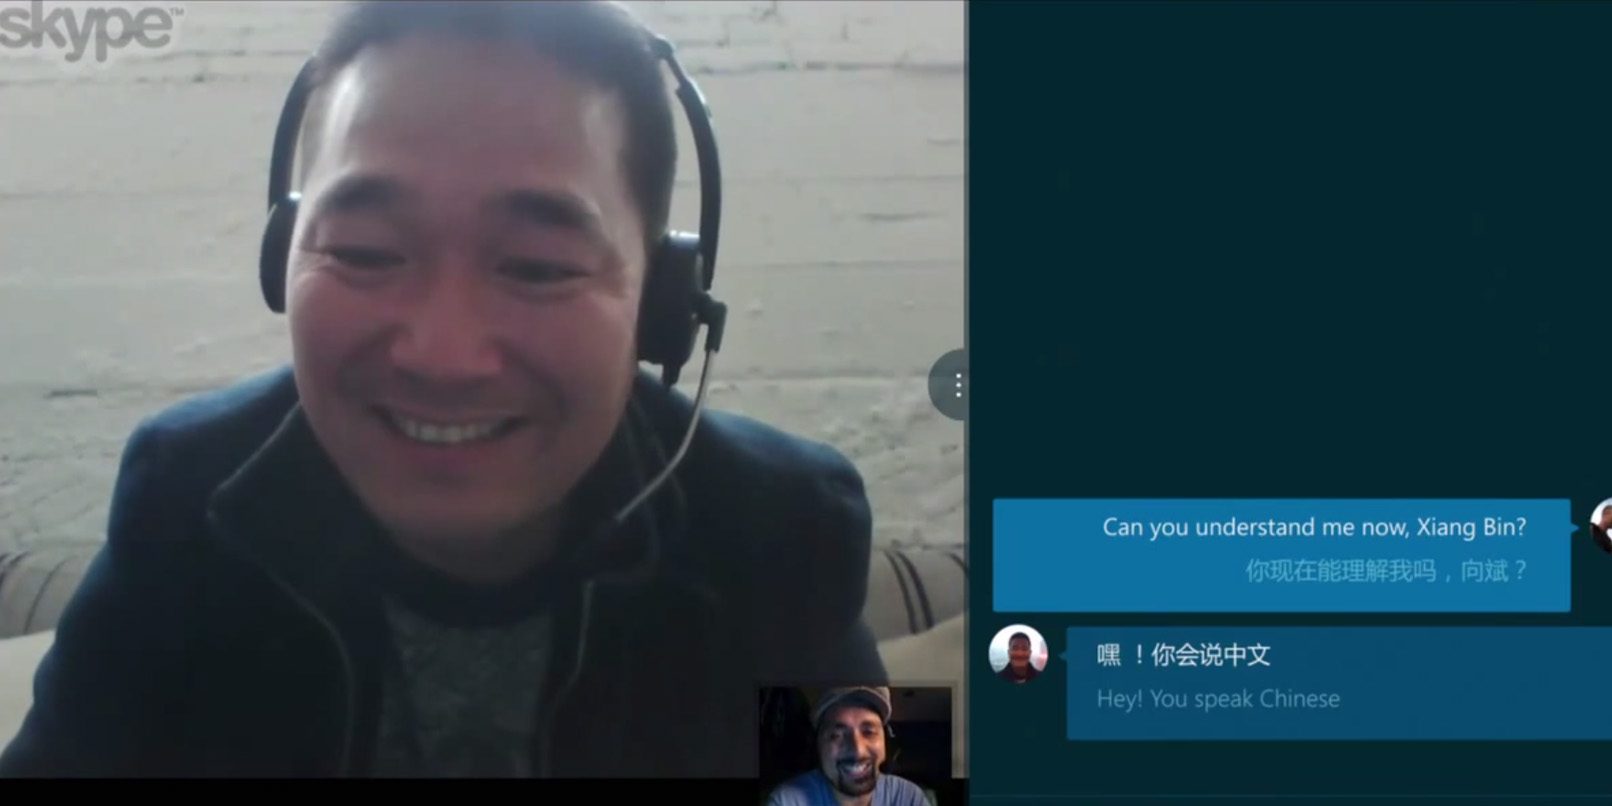 Skype breaks the language barrier with real-time translation on mobile calls